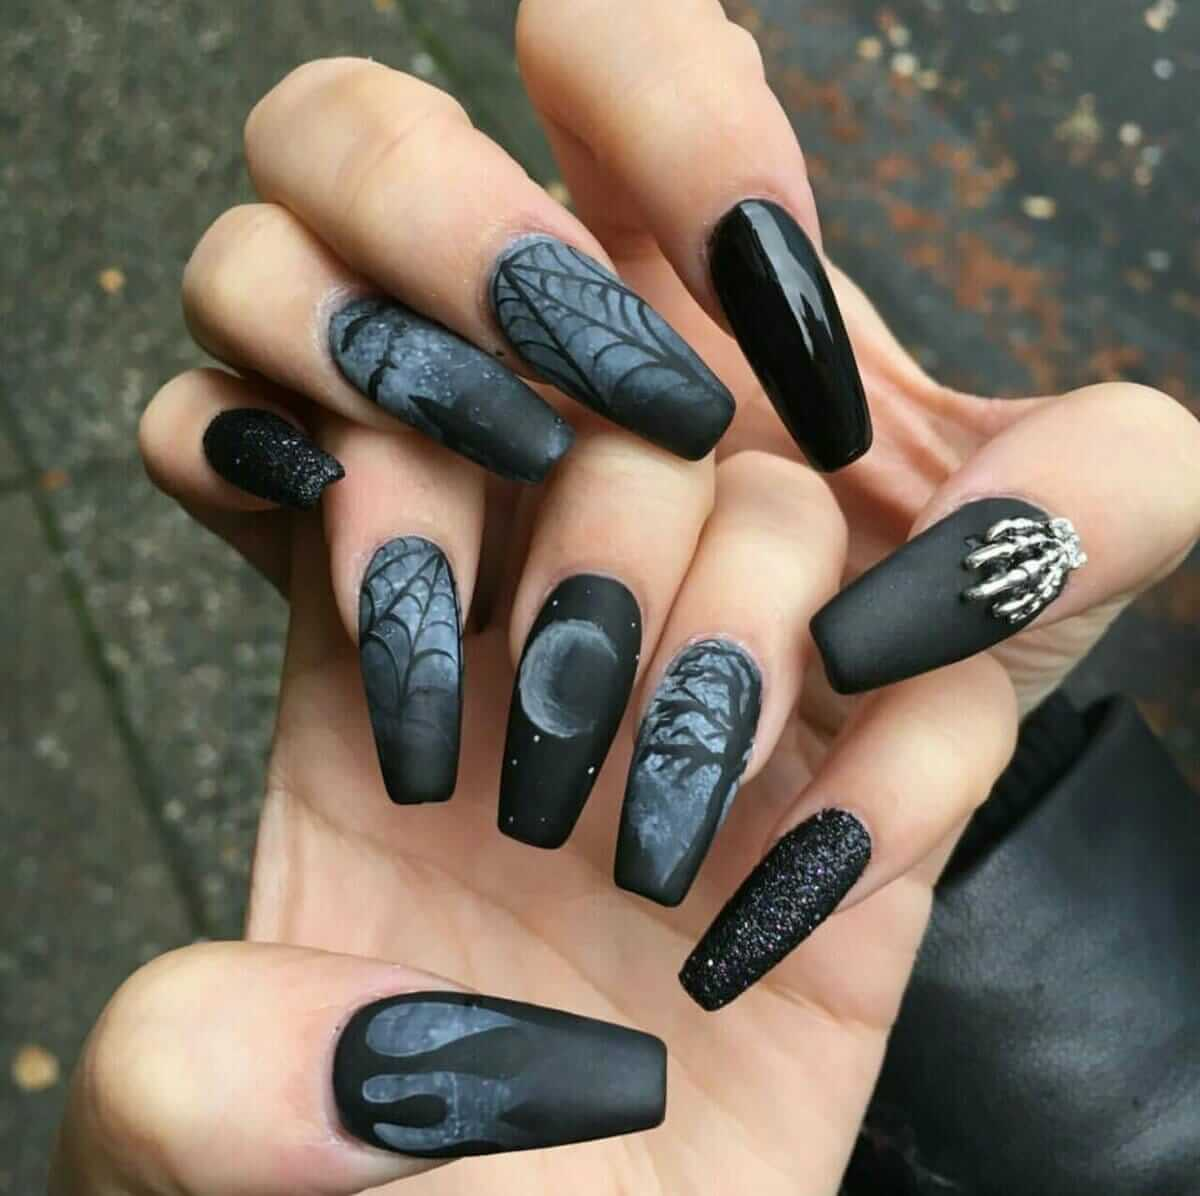 30 Gorgeous Nails Ideas you have to try - Ninja Cosmico